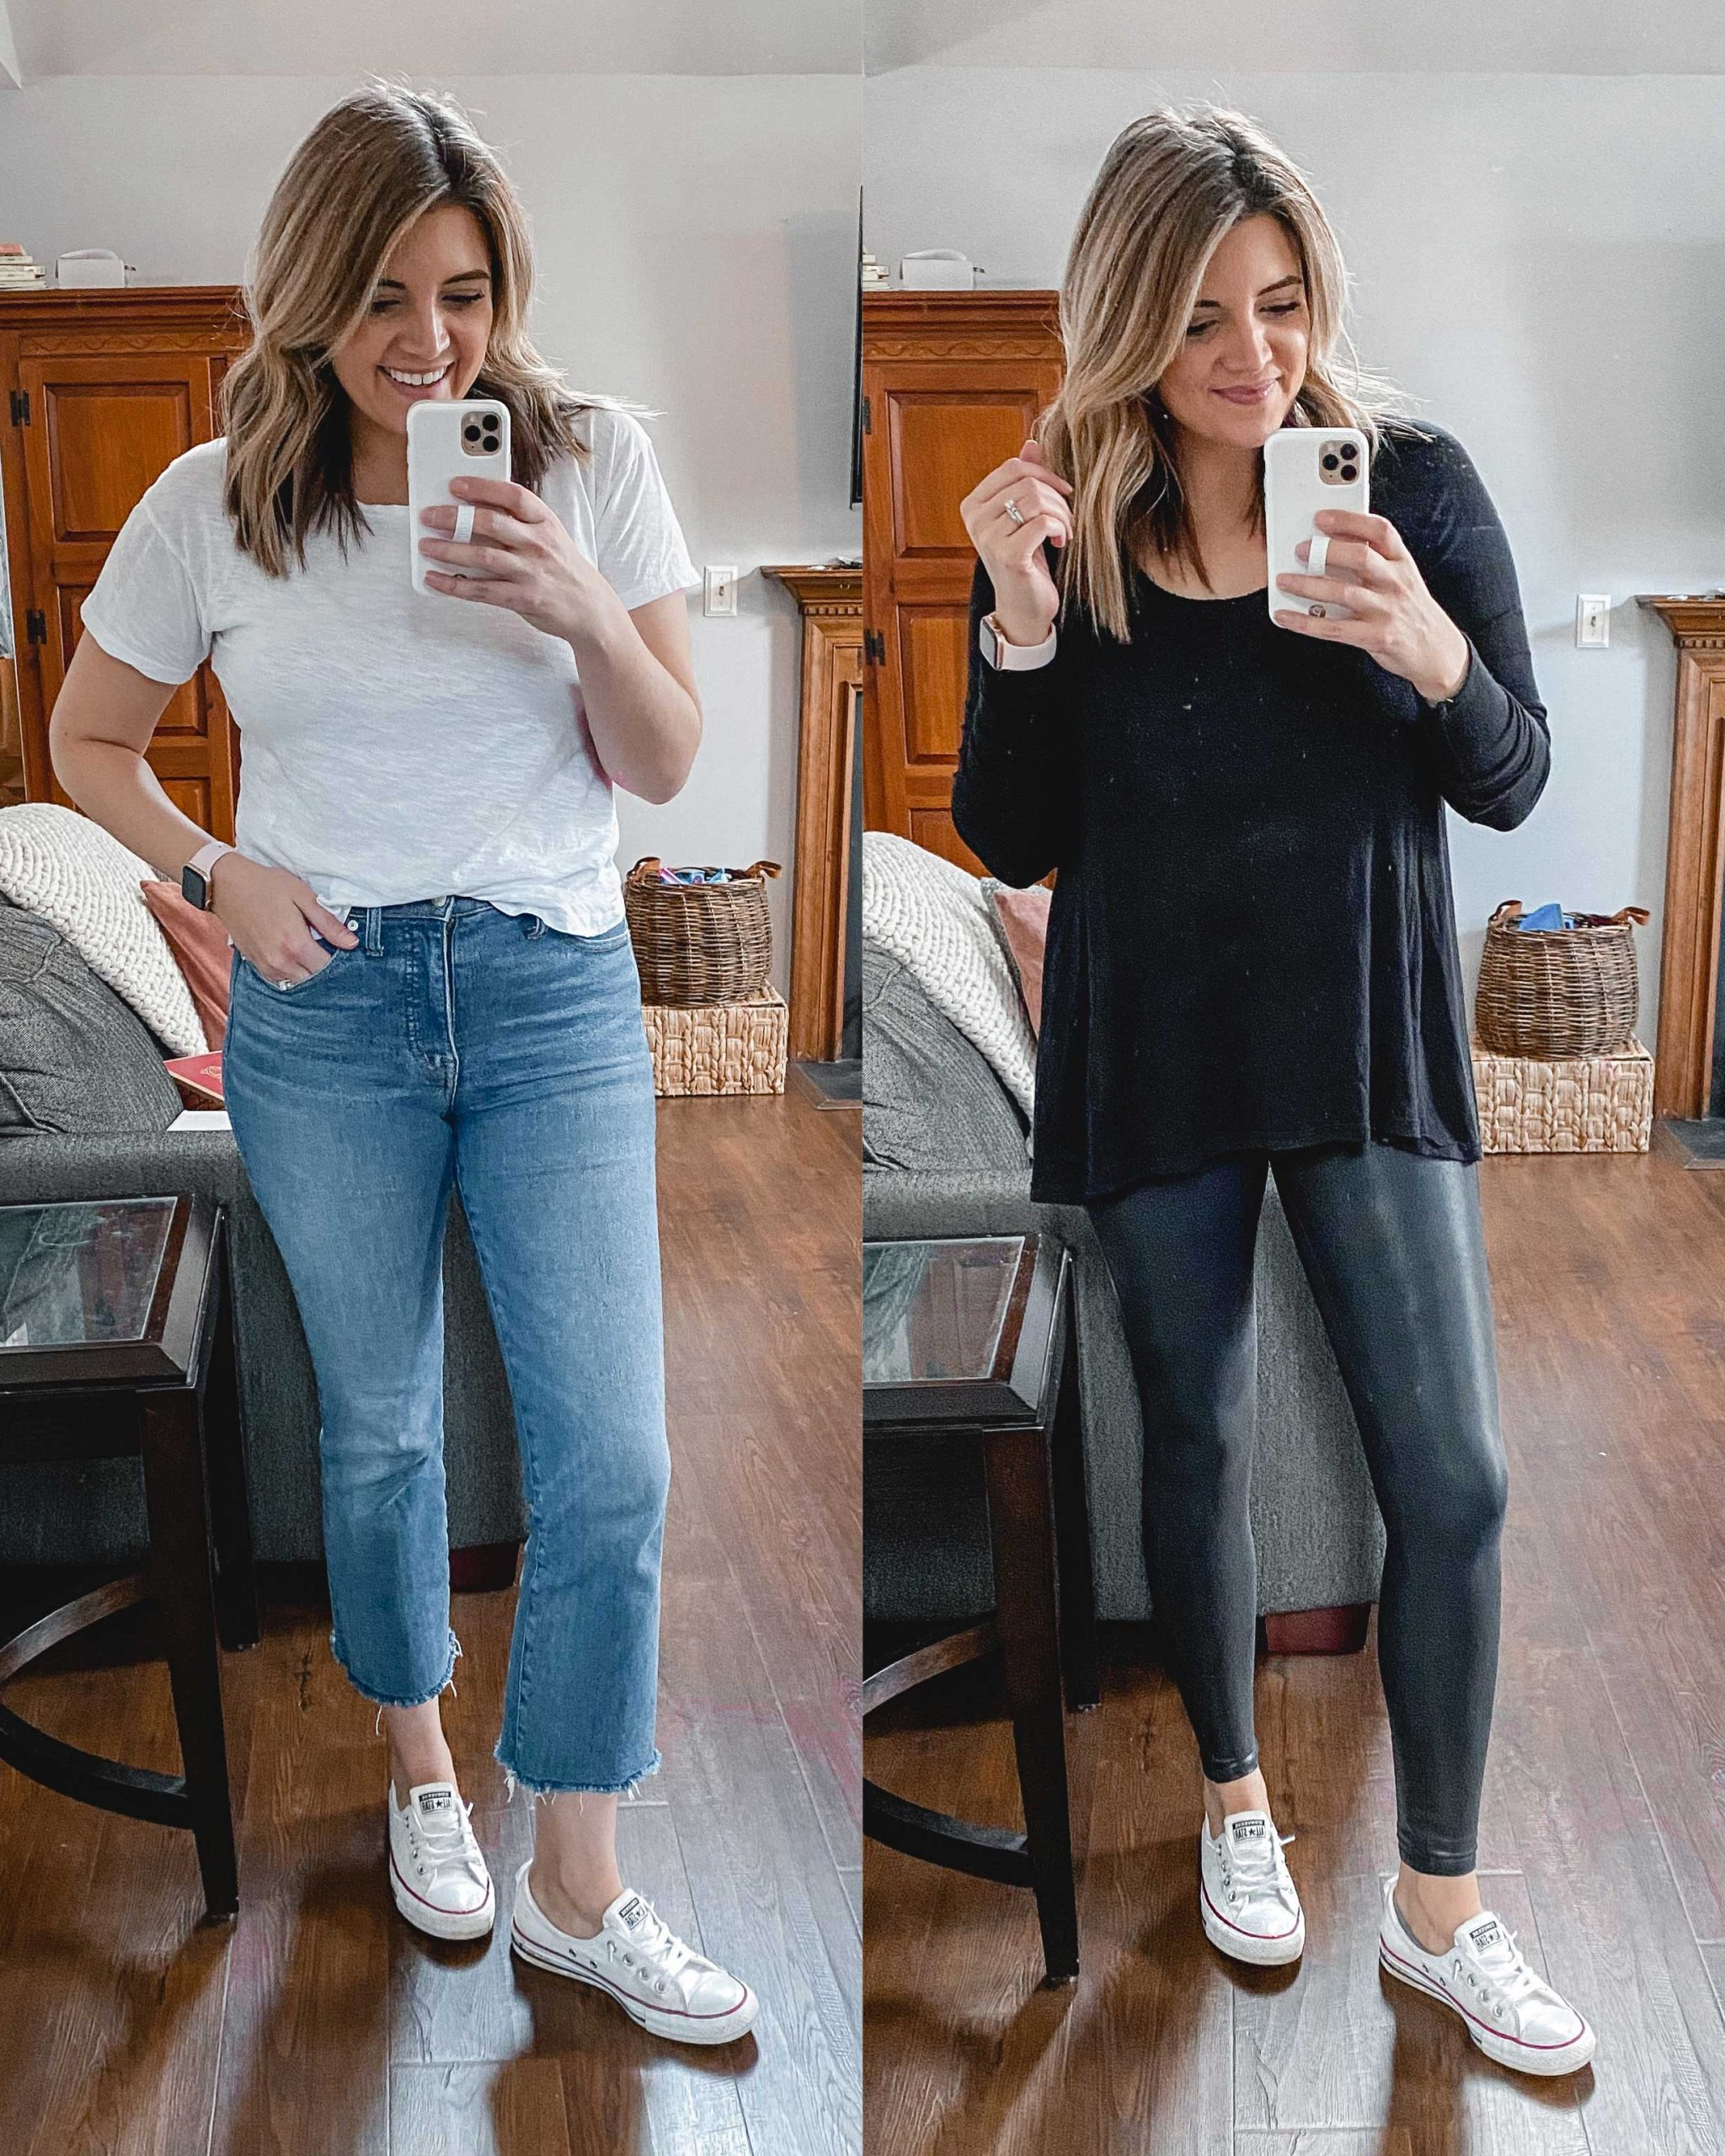 Virginia blogger, Lauren Dix, tries on 10 different pairs of white sneakers for the ultimate white sneaker review! She wears the Converse Shoreline Sneakers sneakers with both jeans and leggings!